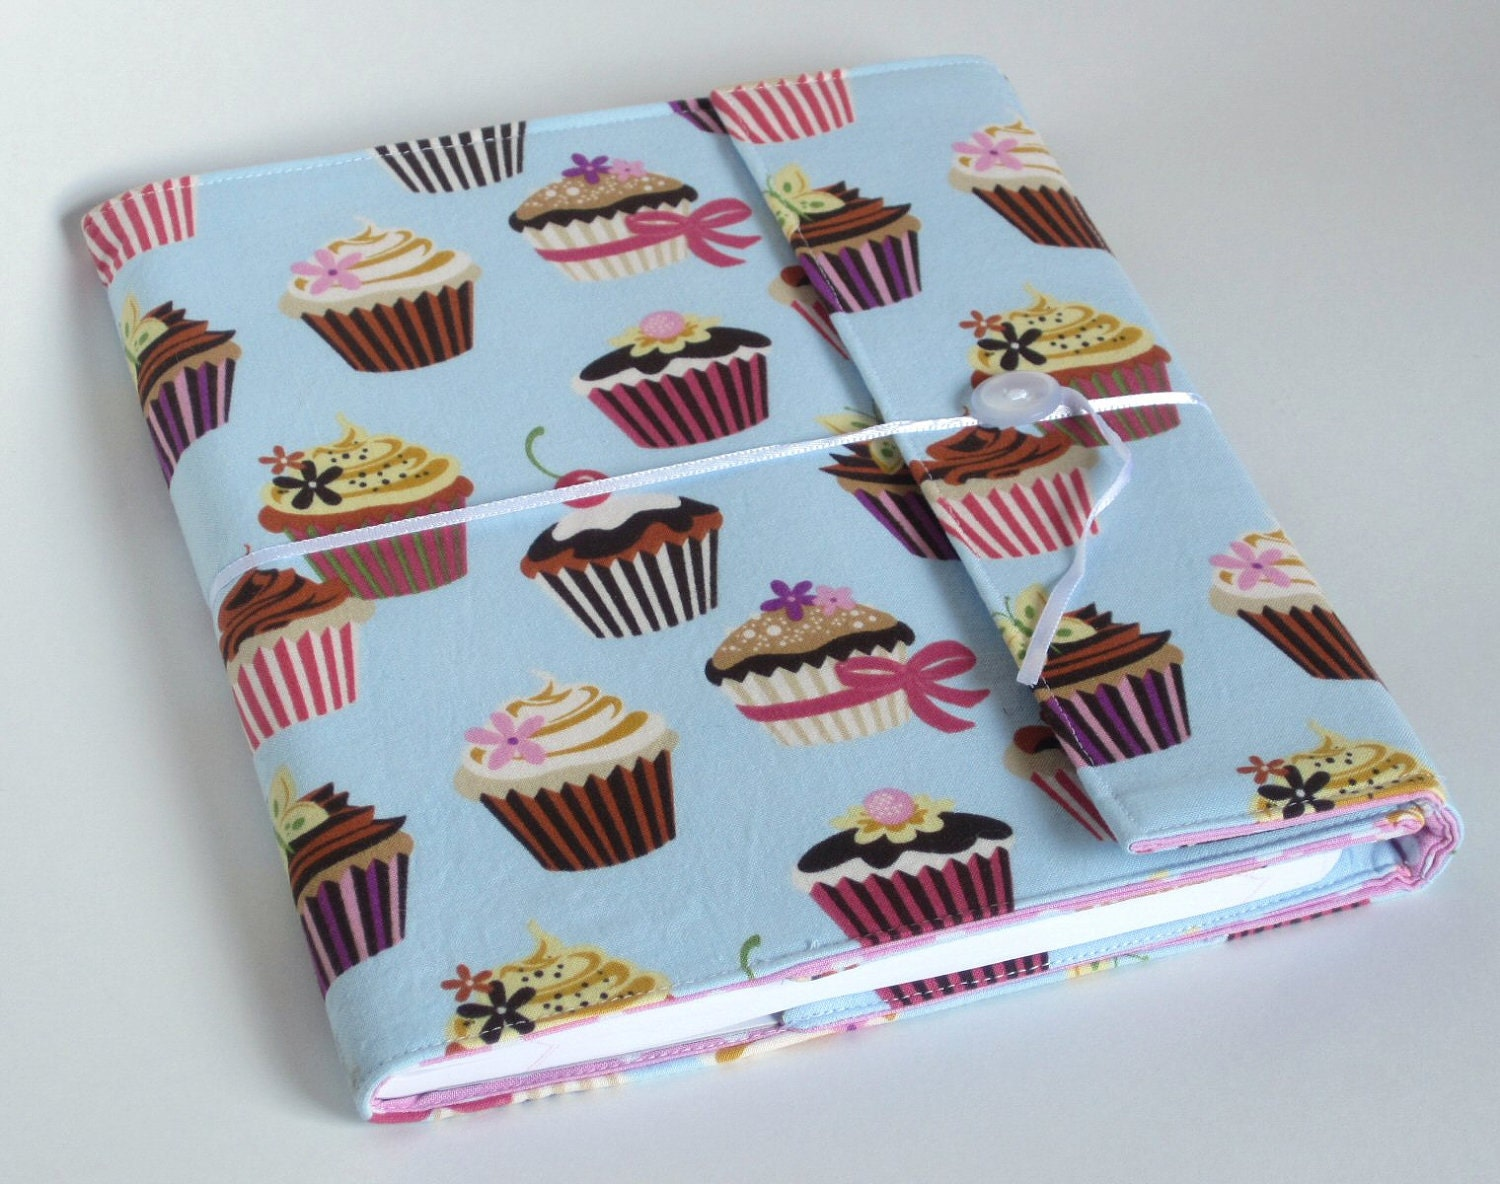 Cupcake Reusable Fabric Covered Composition Book Cover - with pen and composition book